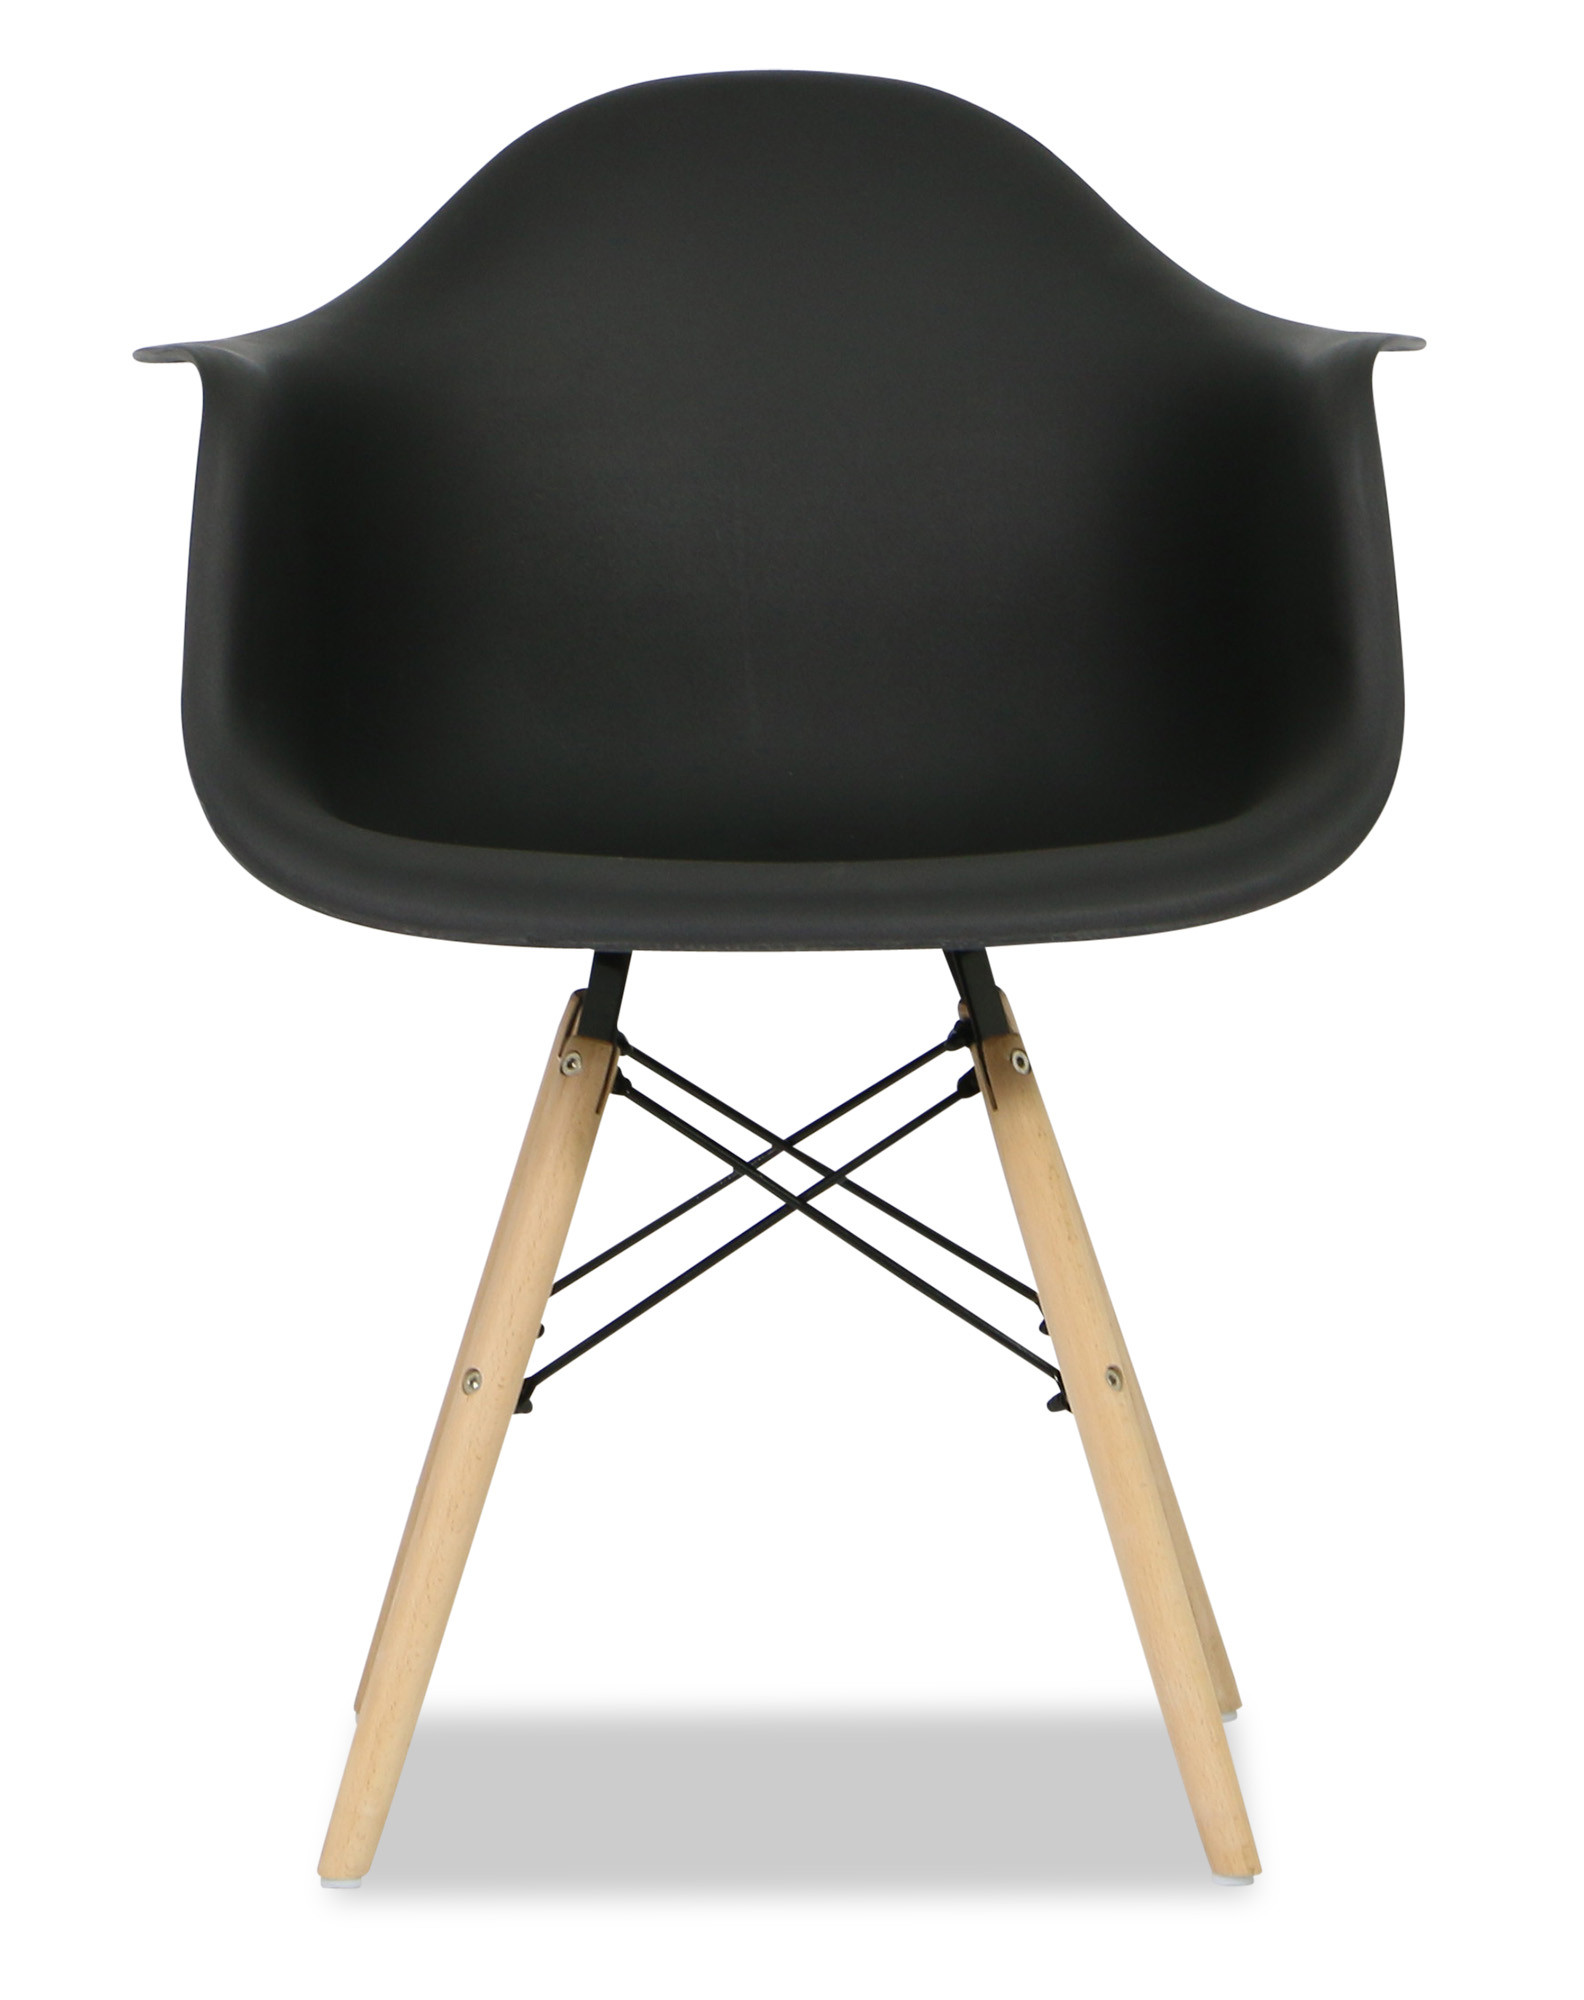 Eames replica designer arm chair black armchairs for Designer furniture replica malaysia